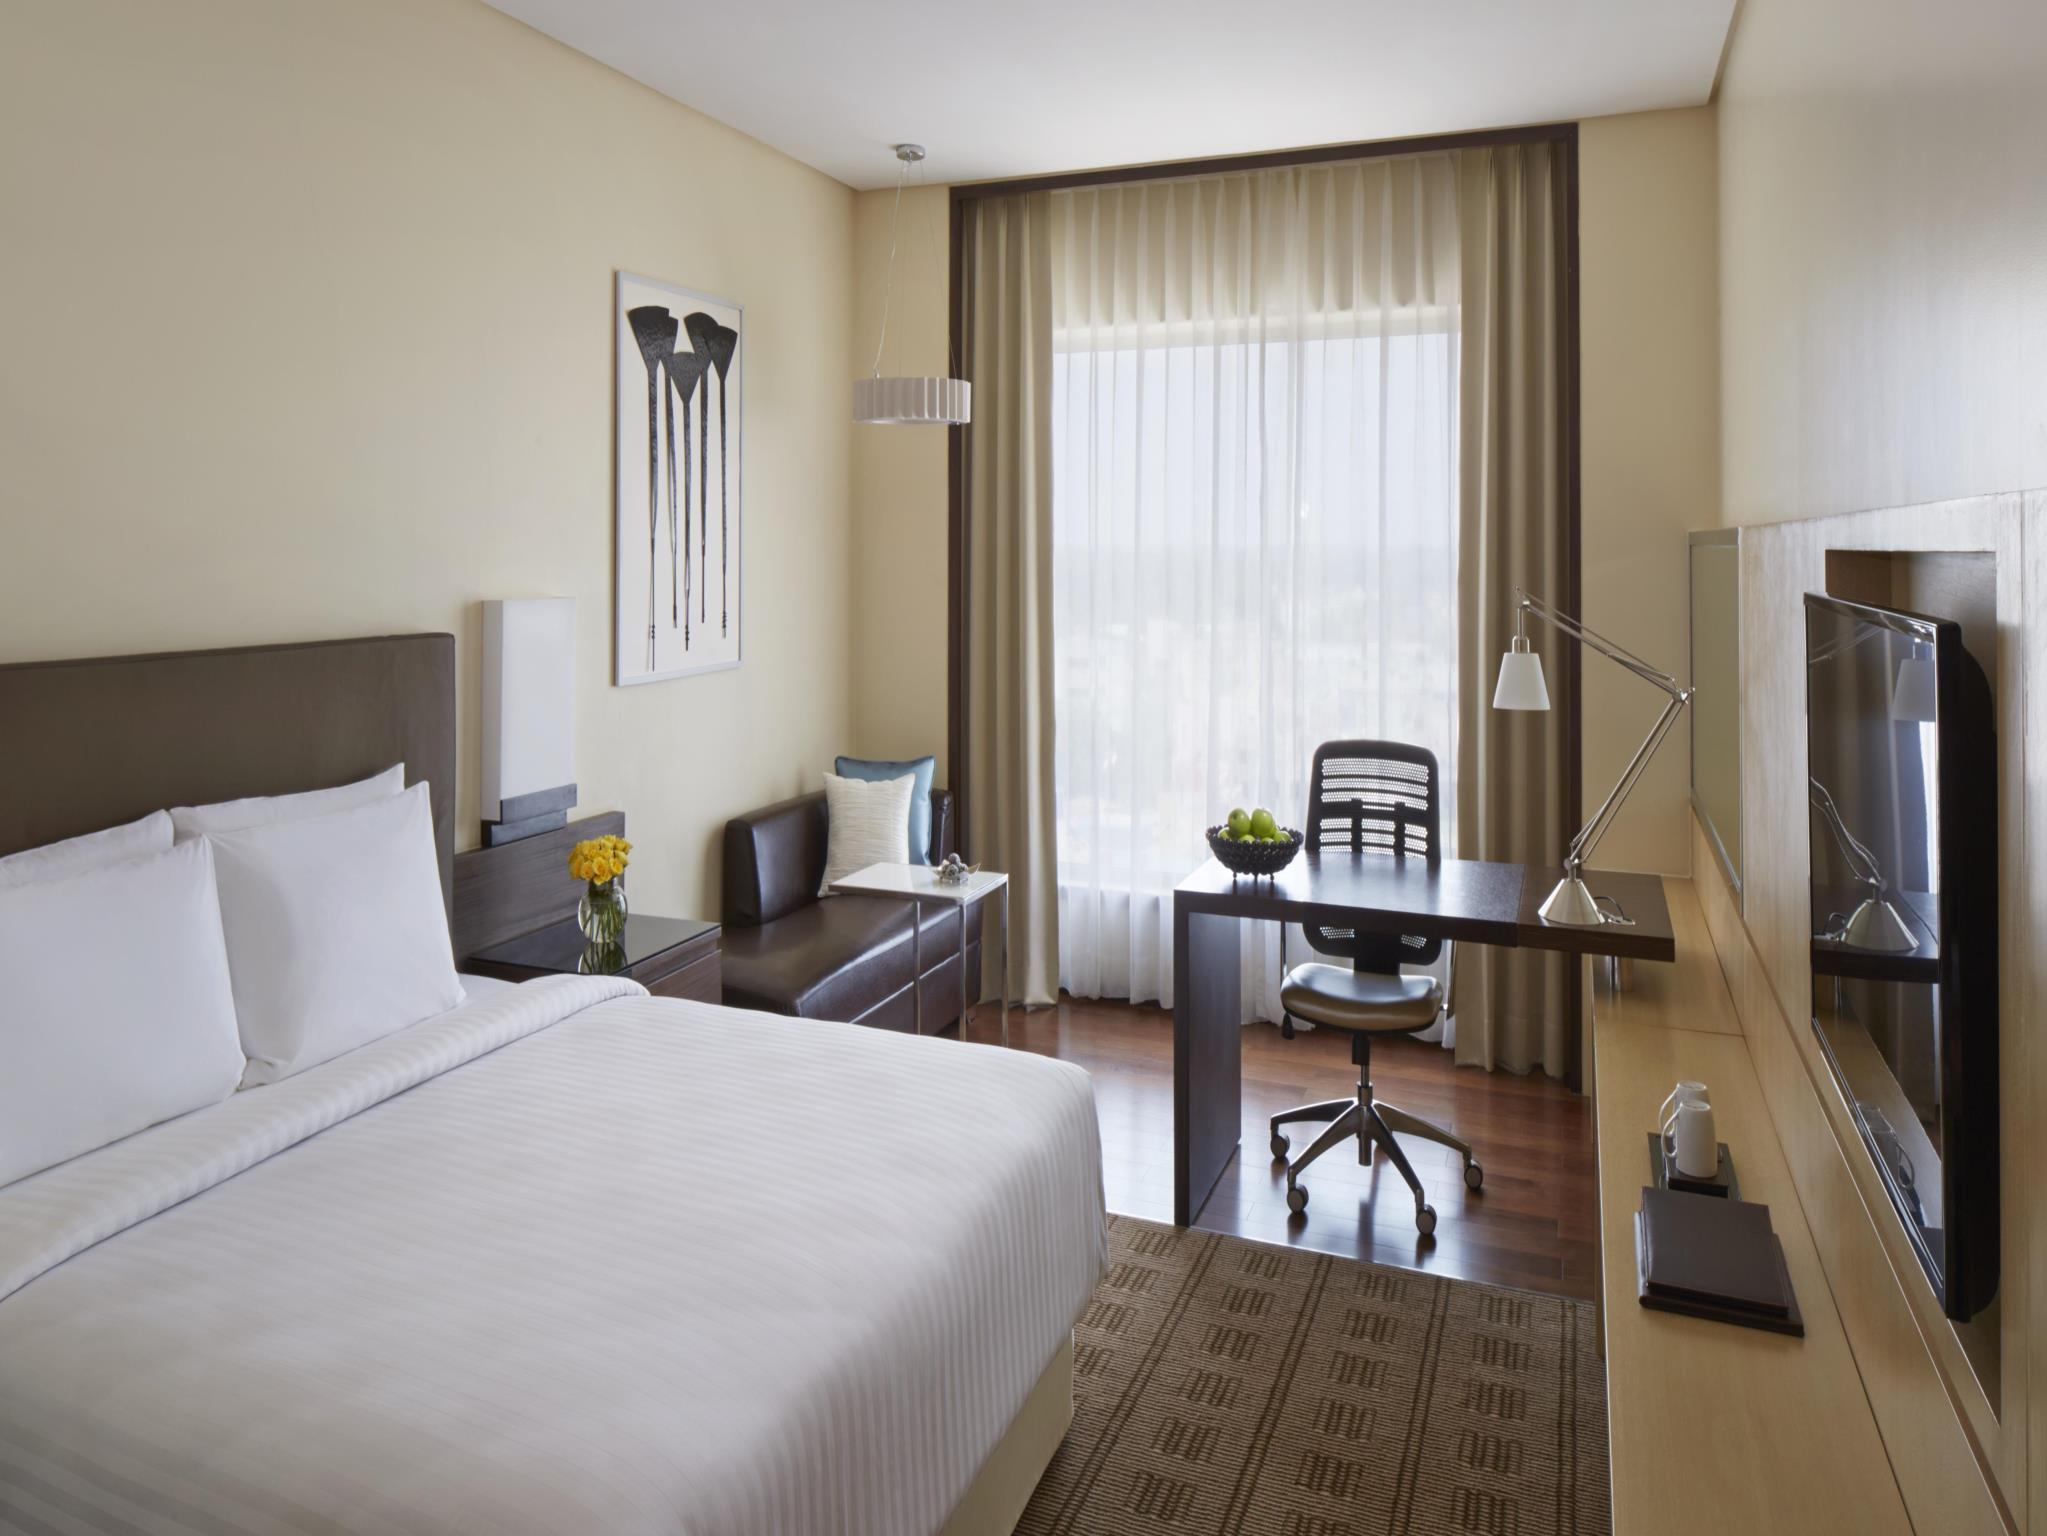 Superior Room, Guest room, 1 King or 2 Queen, City view